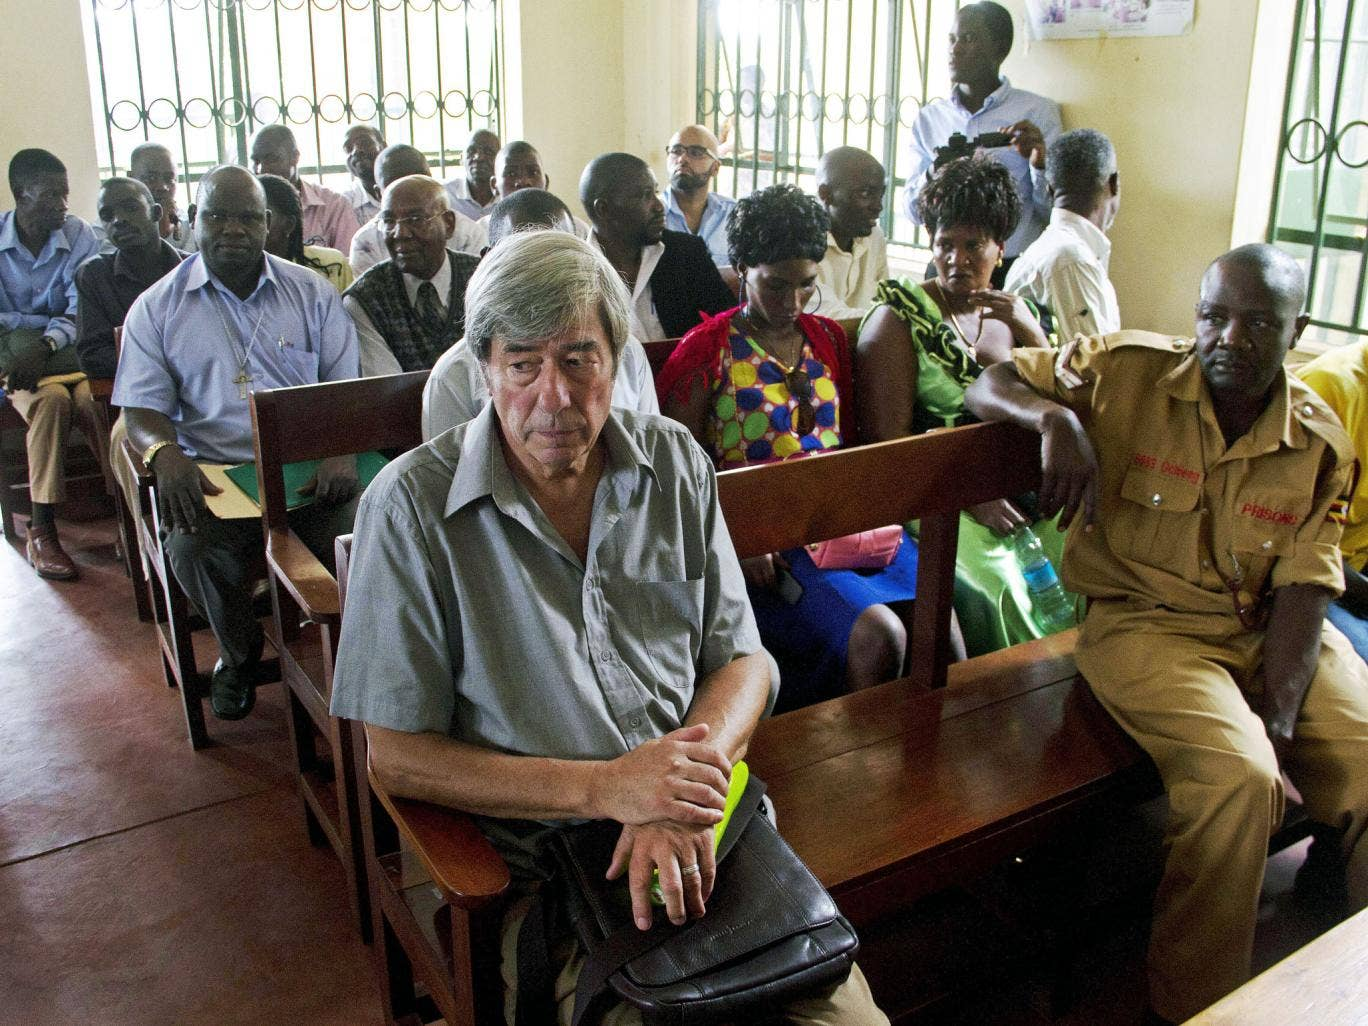 Bernard Randall appears in the Entebbe Chief Magistrates Court on 18 November, on charges of 'trafficking obscene publications'. He was cleared of the charges on Wednesday, and it is thought he will be deported to Britain on Thursday.